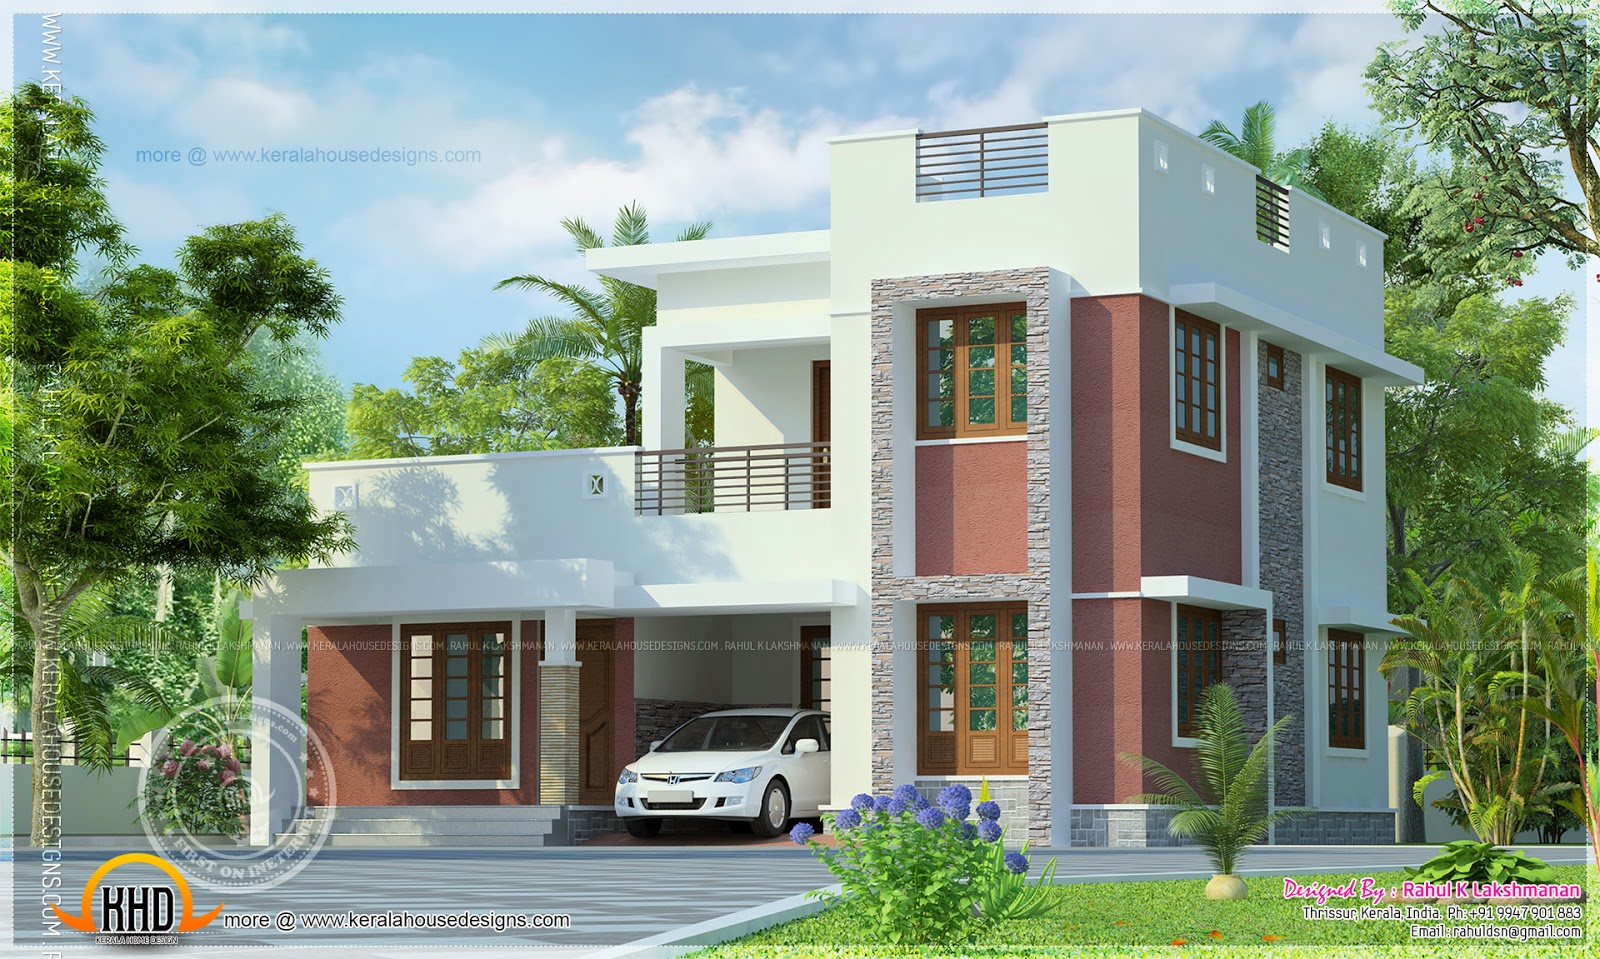 Simple flat roof house exterior kerala home design and House plan flat roof design